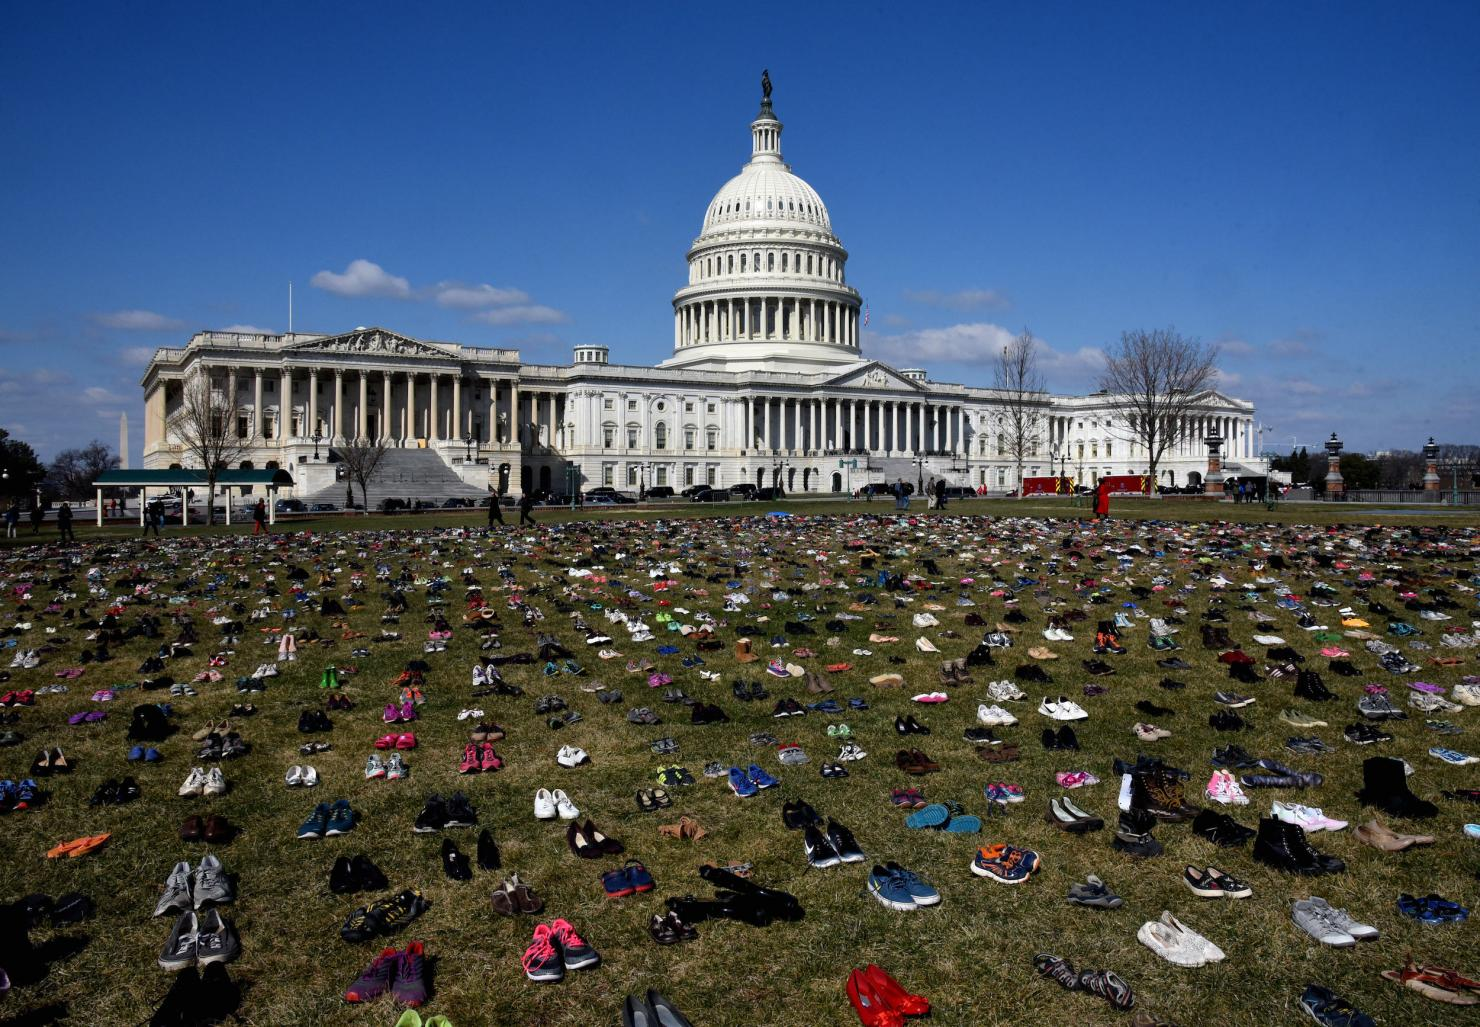 Thousands of children's shoes line the grounds of the Capitol building in D.C.